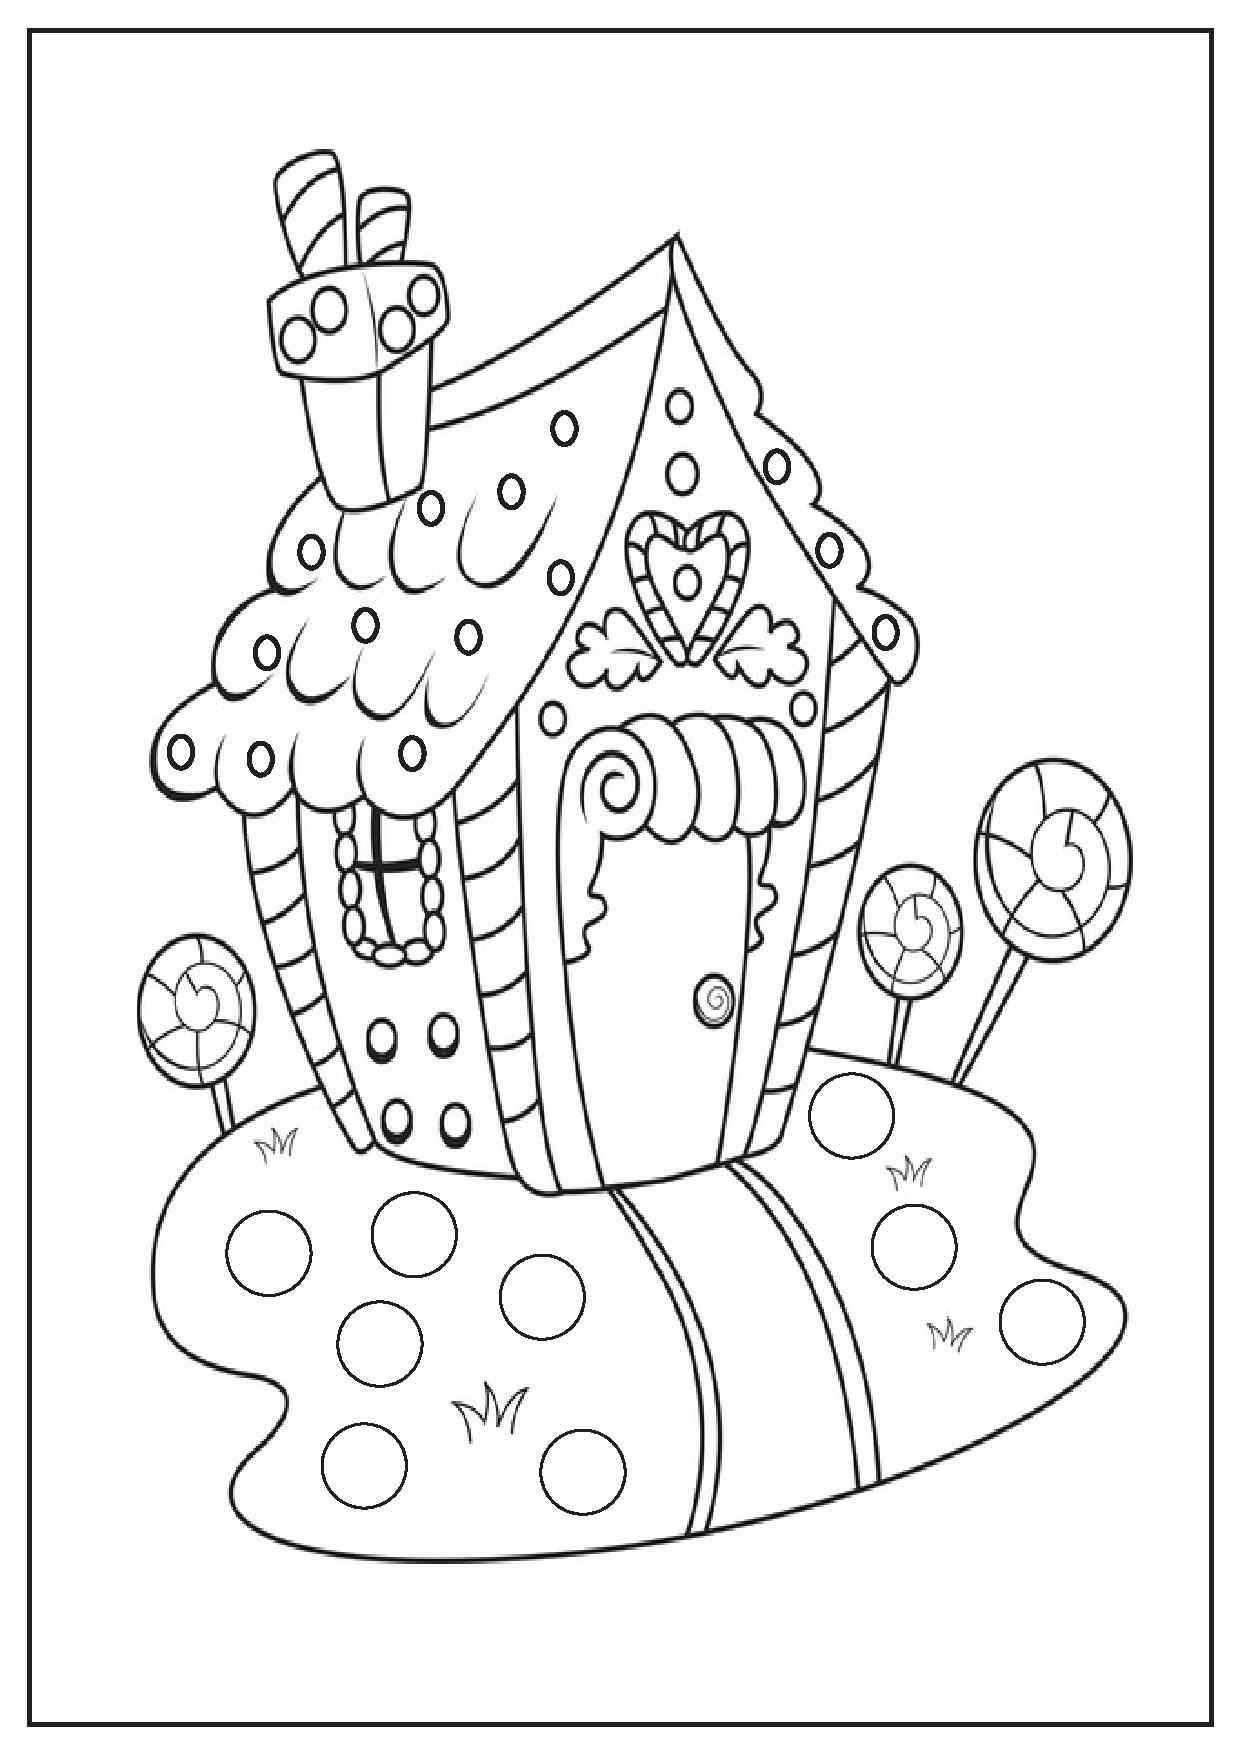 Christmas Coloring Pages For Elementary School With Best Luxury